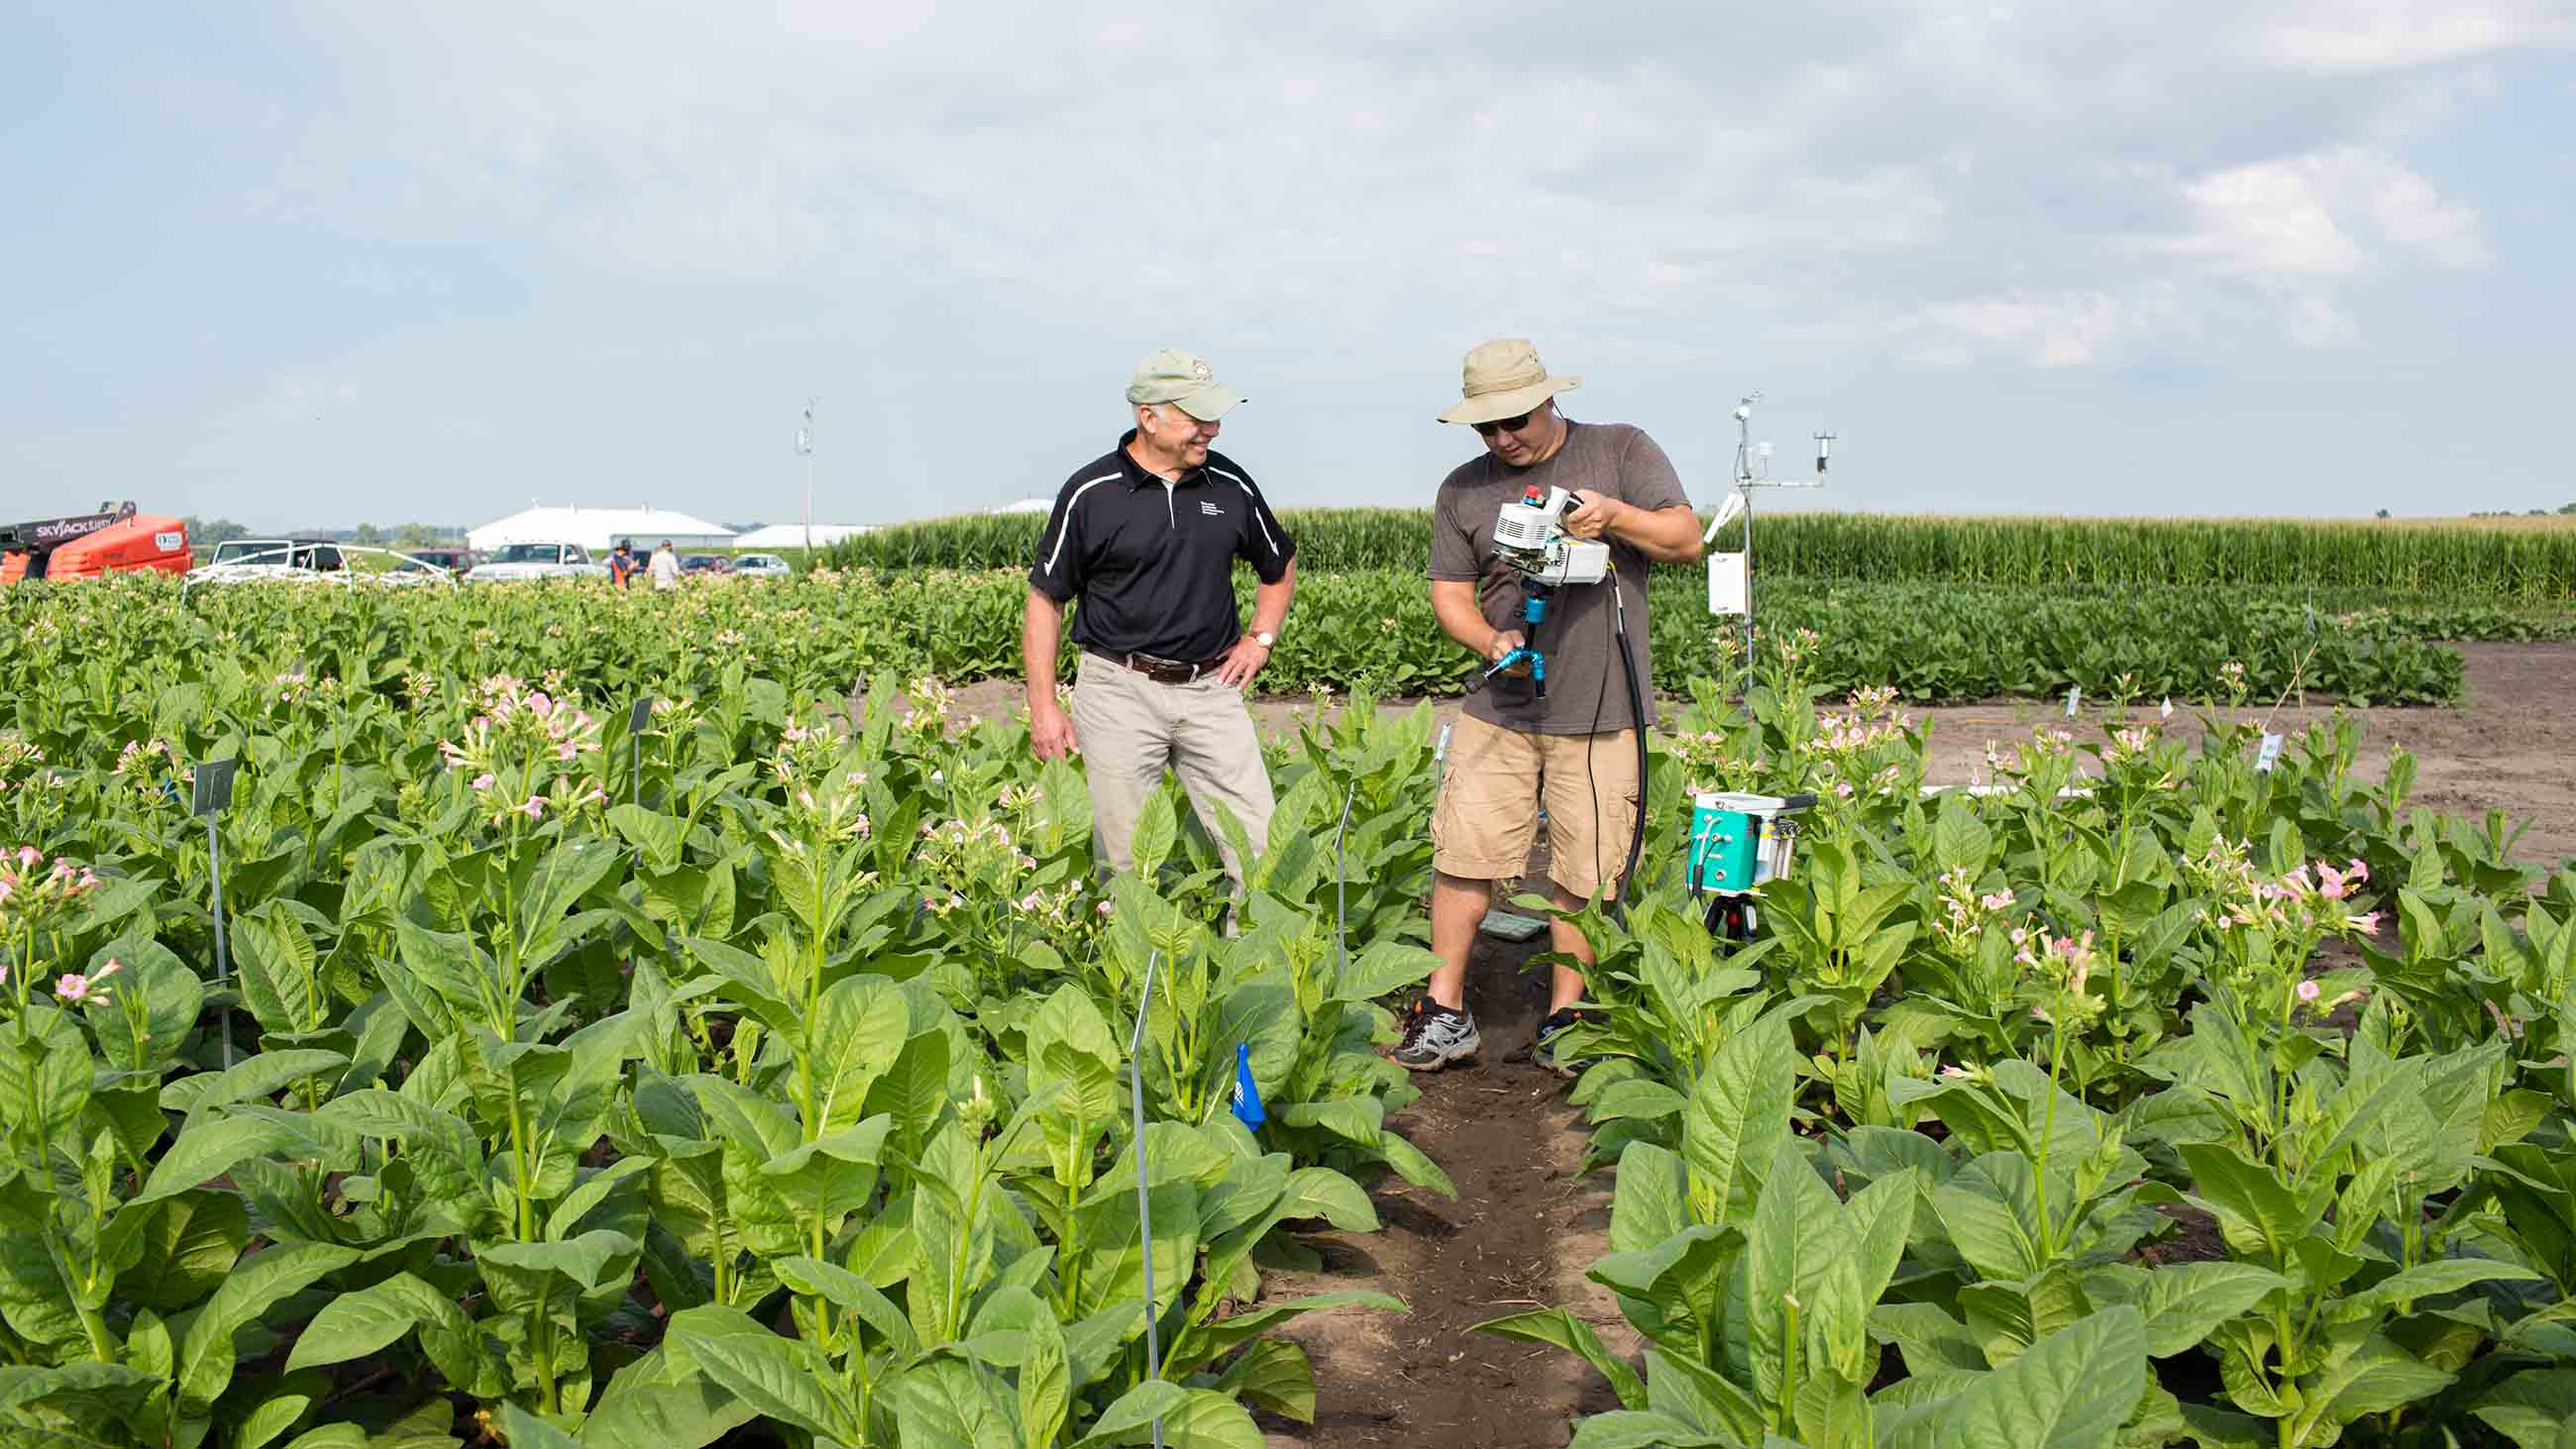 Don Ort and Paul South stand in tobacco field trial.